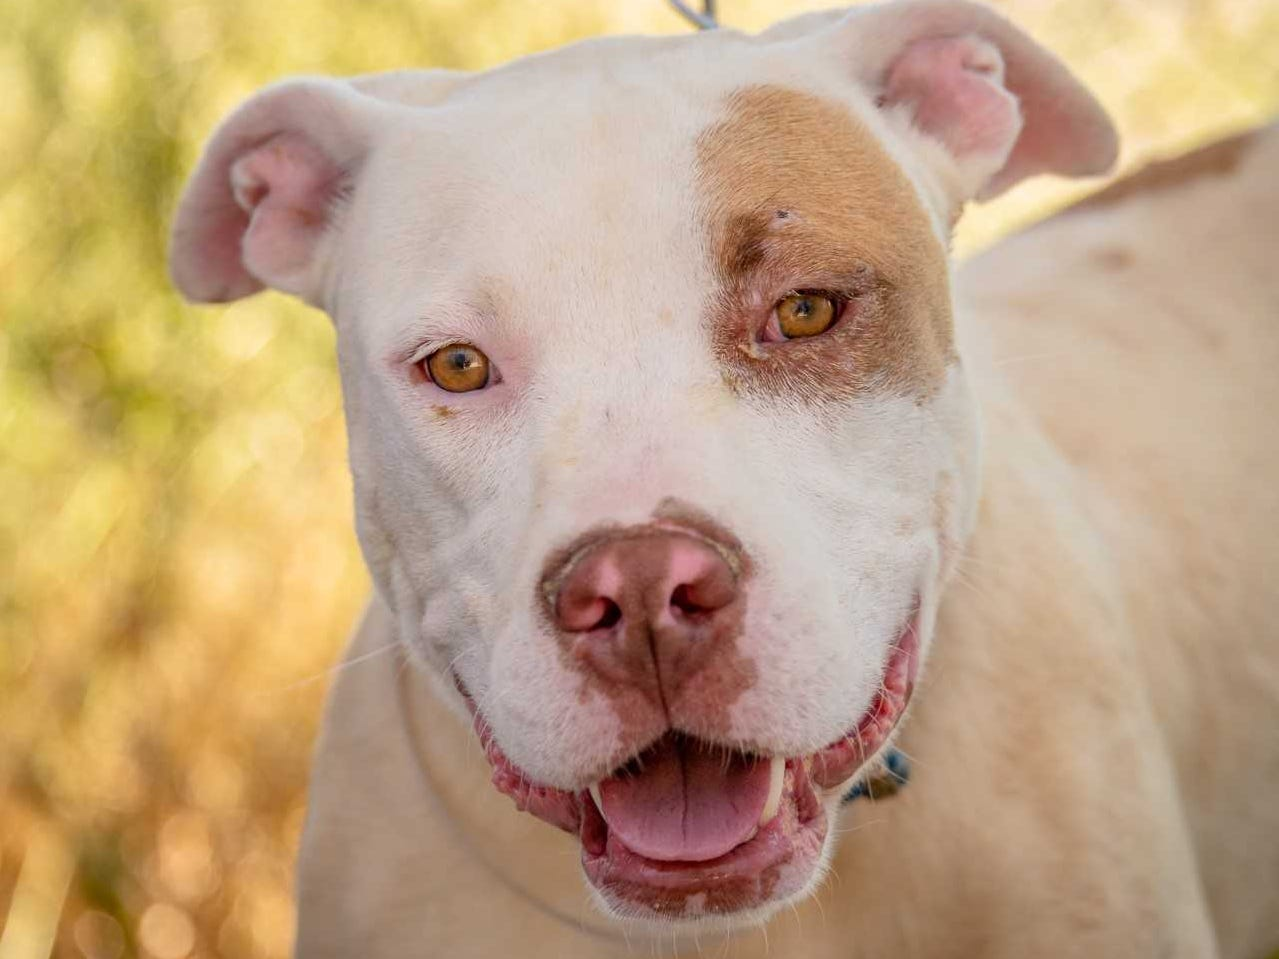 Cane - Male (neutered) pitbull mix, 3 years old. Intake date: 5/5/2018